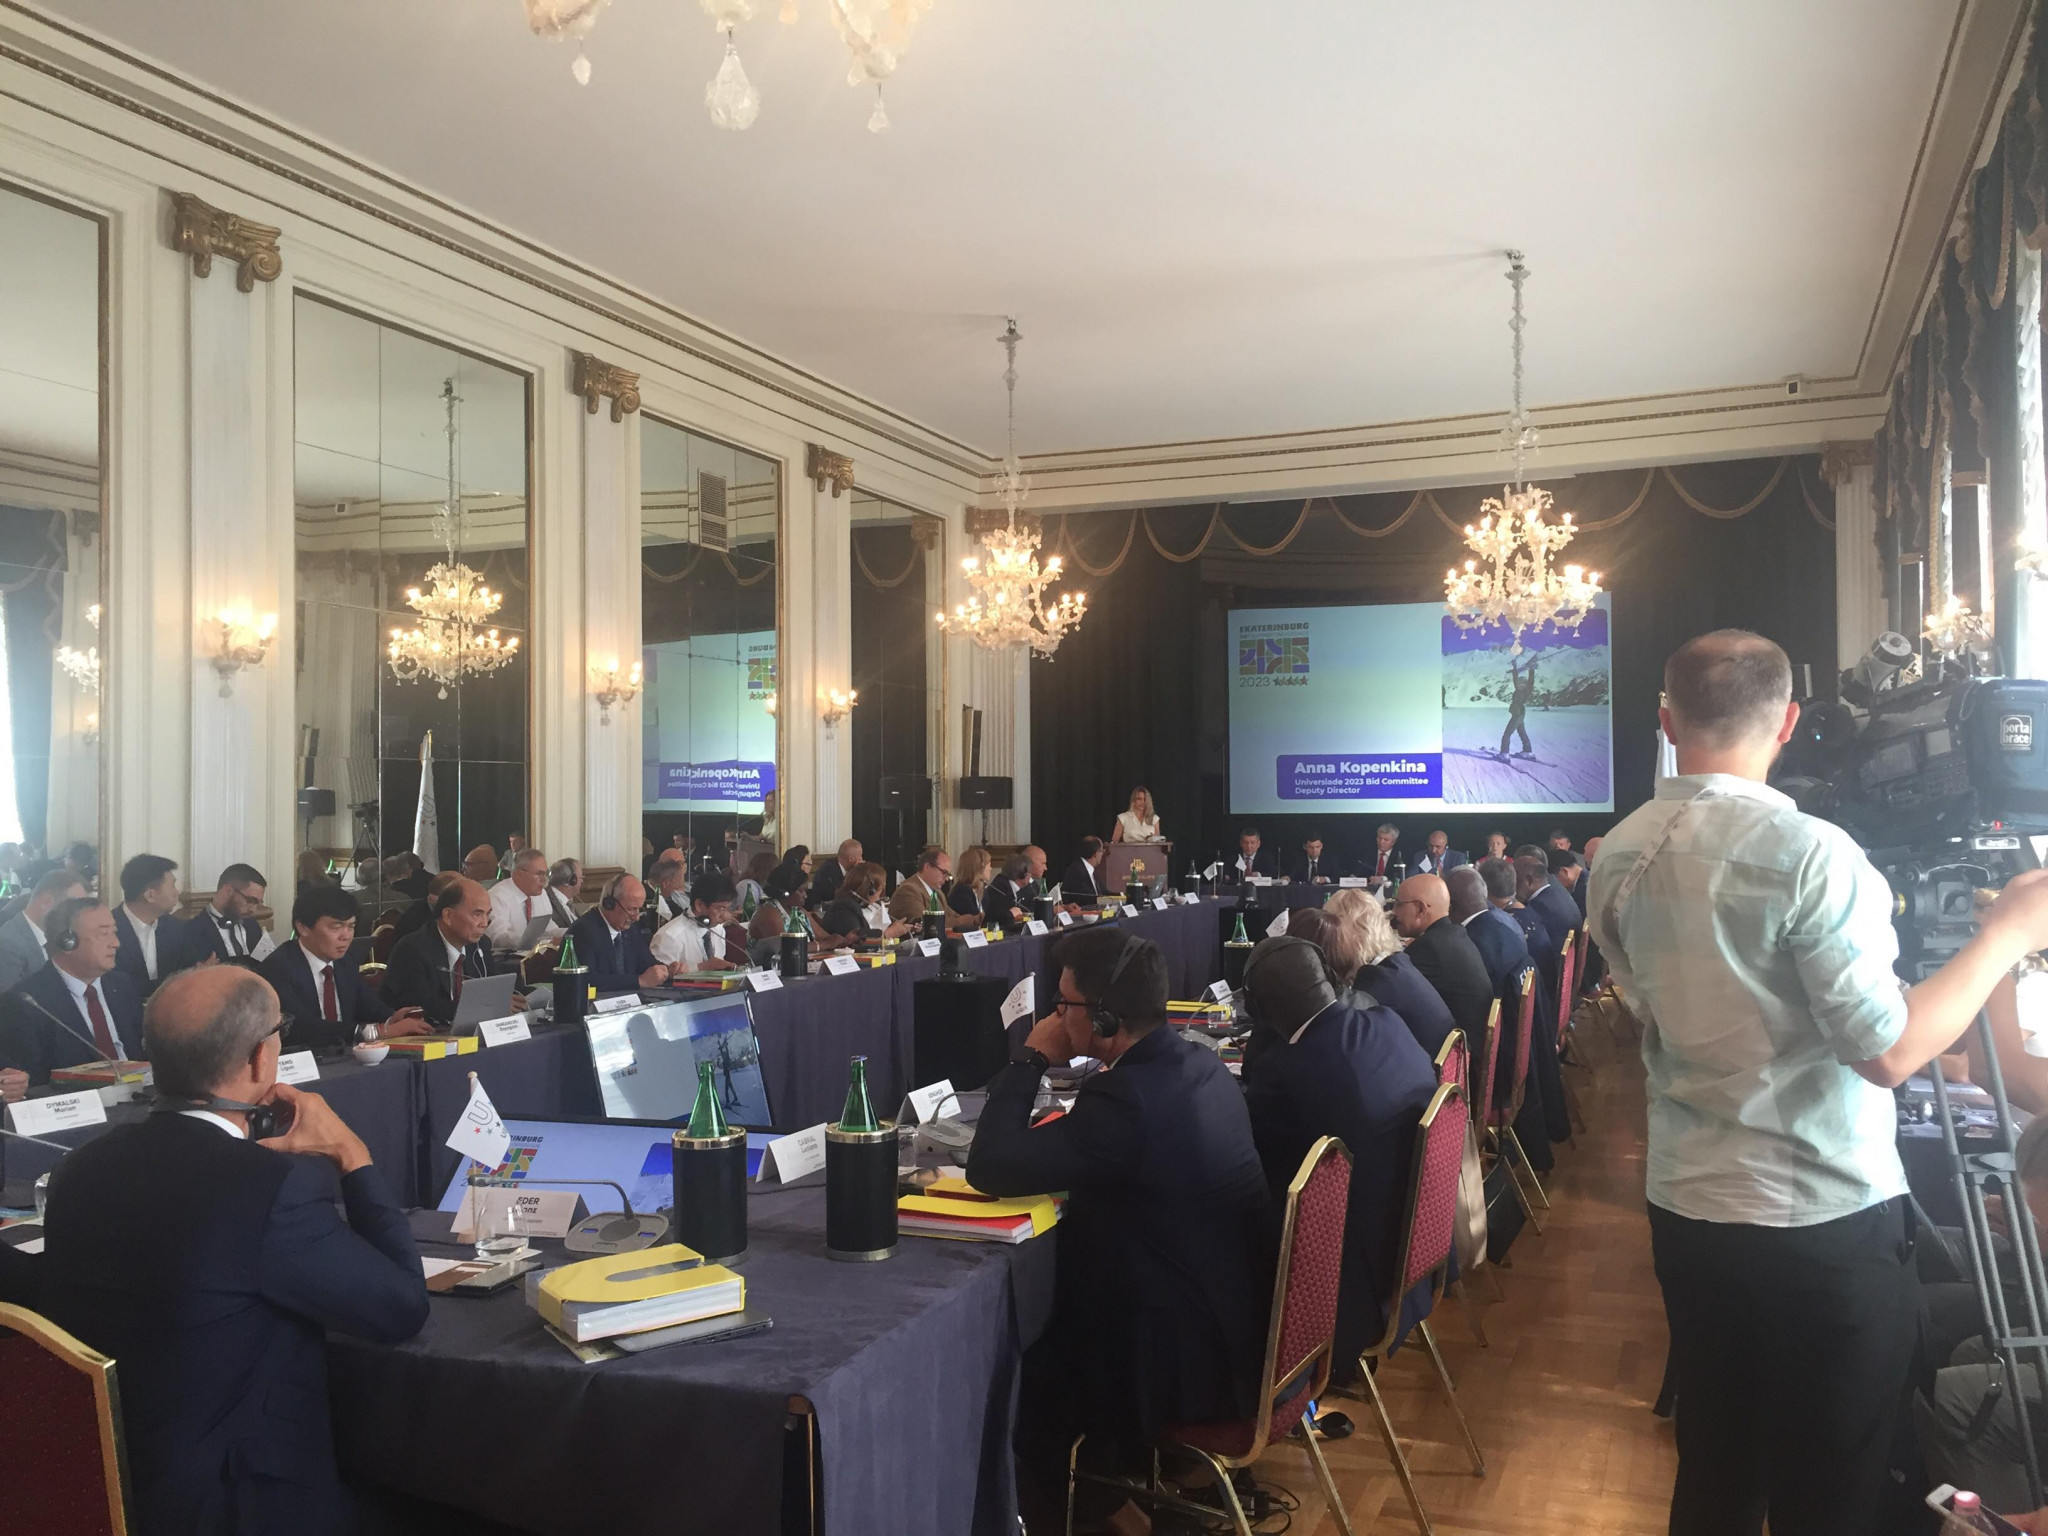 Lucerne 2021 and Chengdu 2021 present progress report to FISU Executive Committee